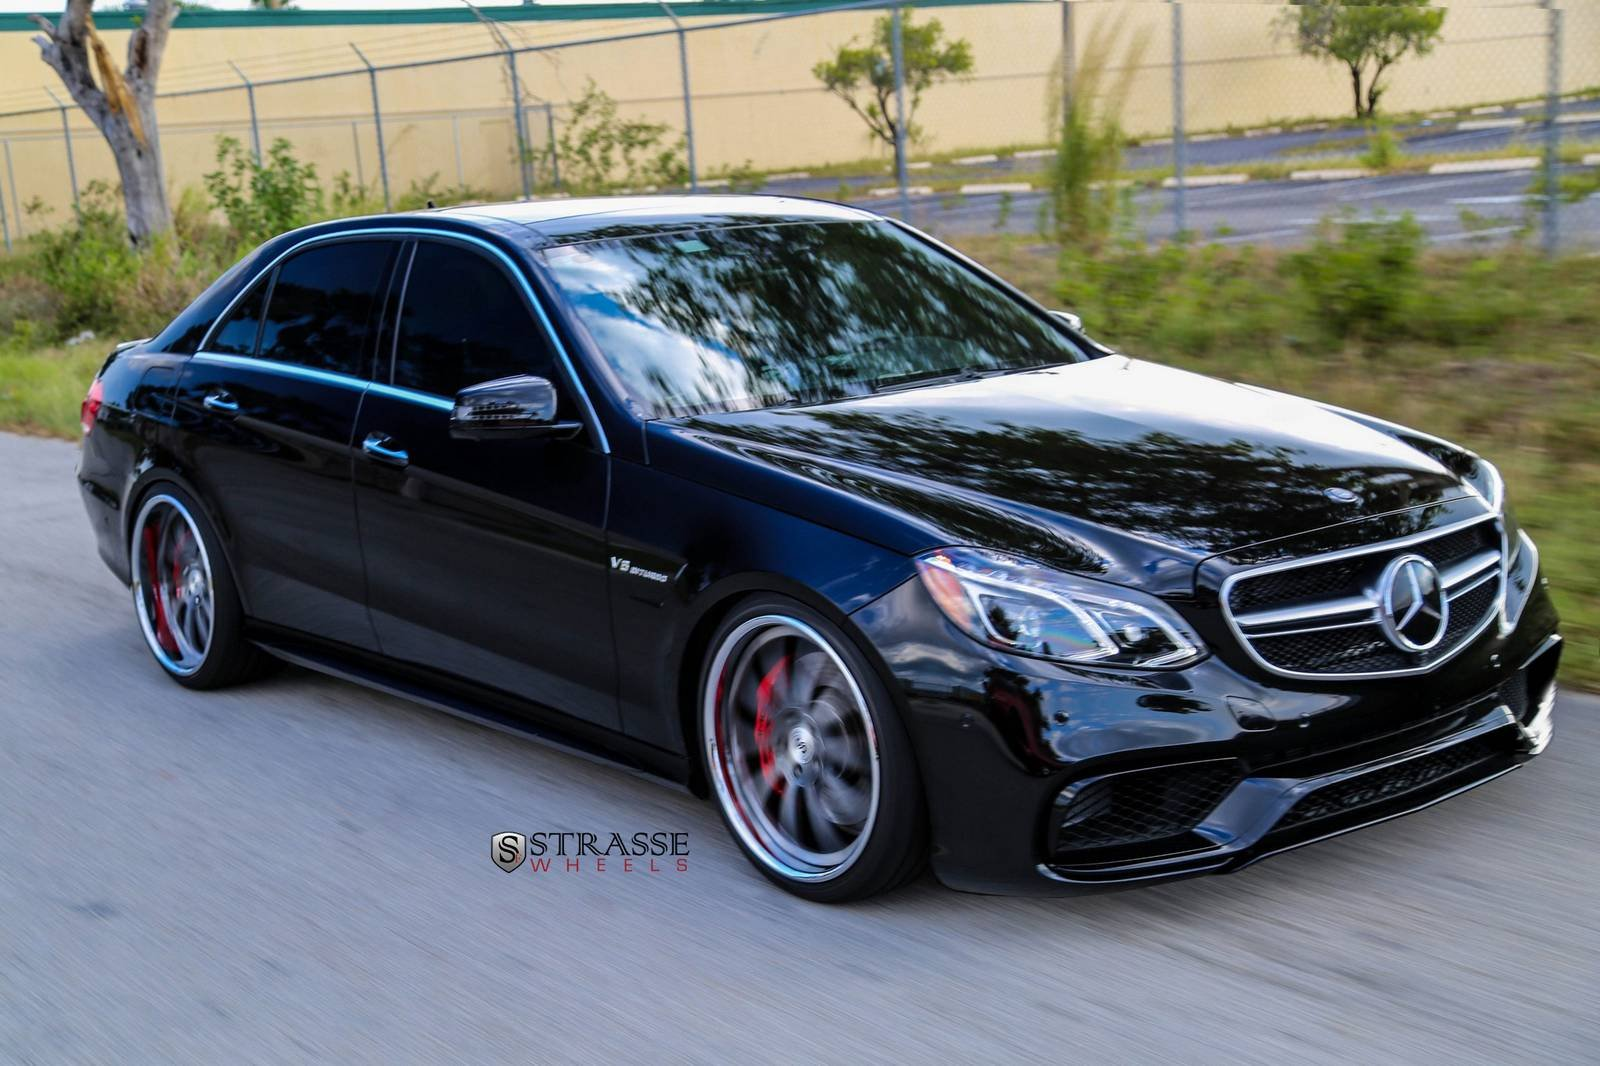 2014 amg benz e63 mercedes tuning strasse wheels wallpaper 1600x1066 390023 wallpaperup. Black Bedroom Furniture Sets. Home Design Ideas